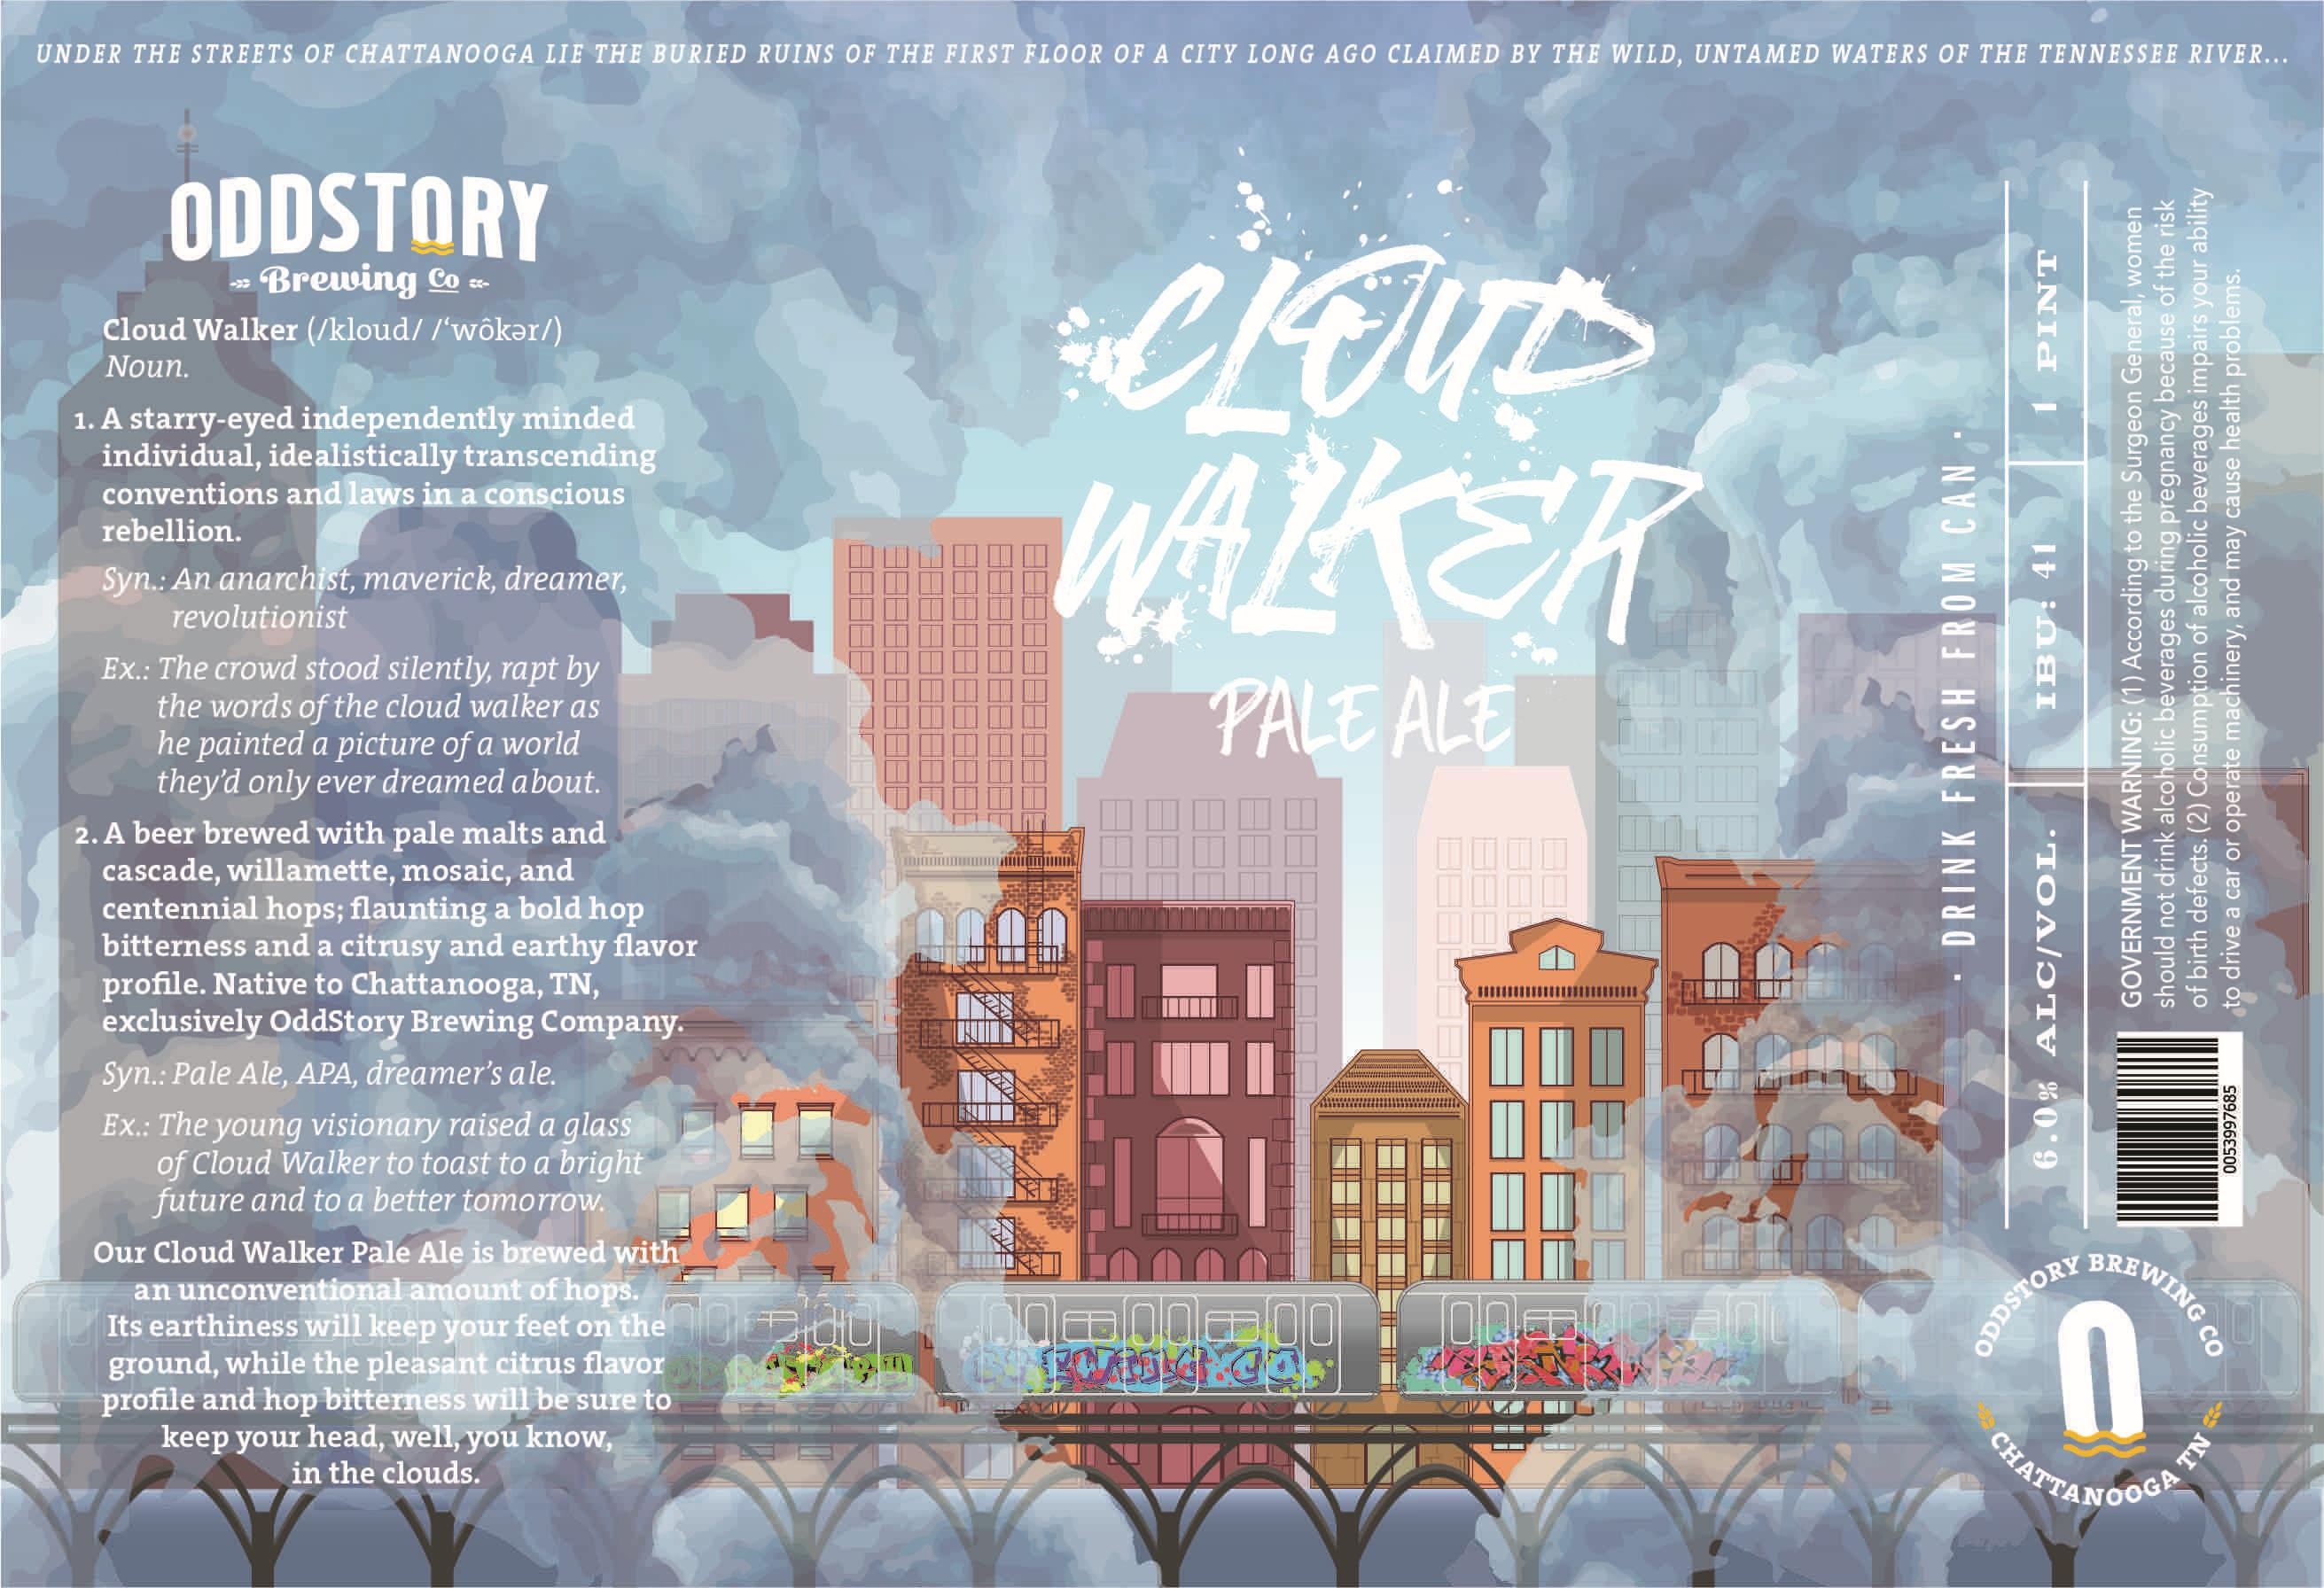 Oddstory Brewing Company Cloud Walker Pale Ale